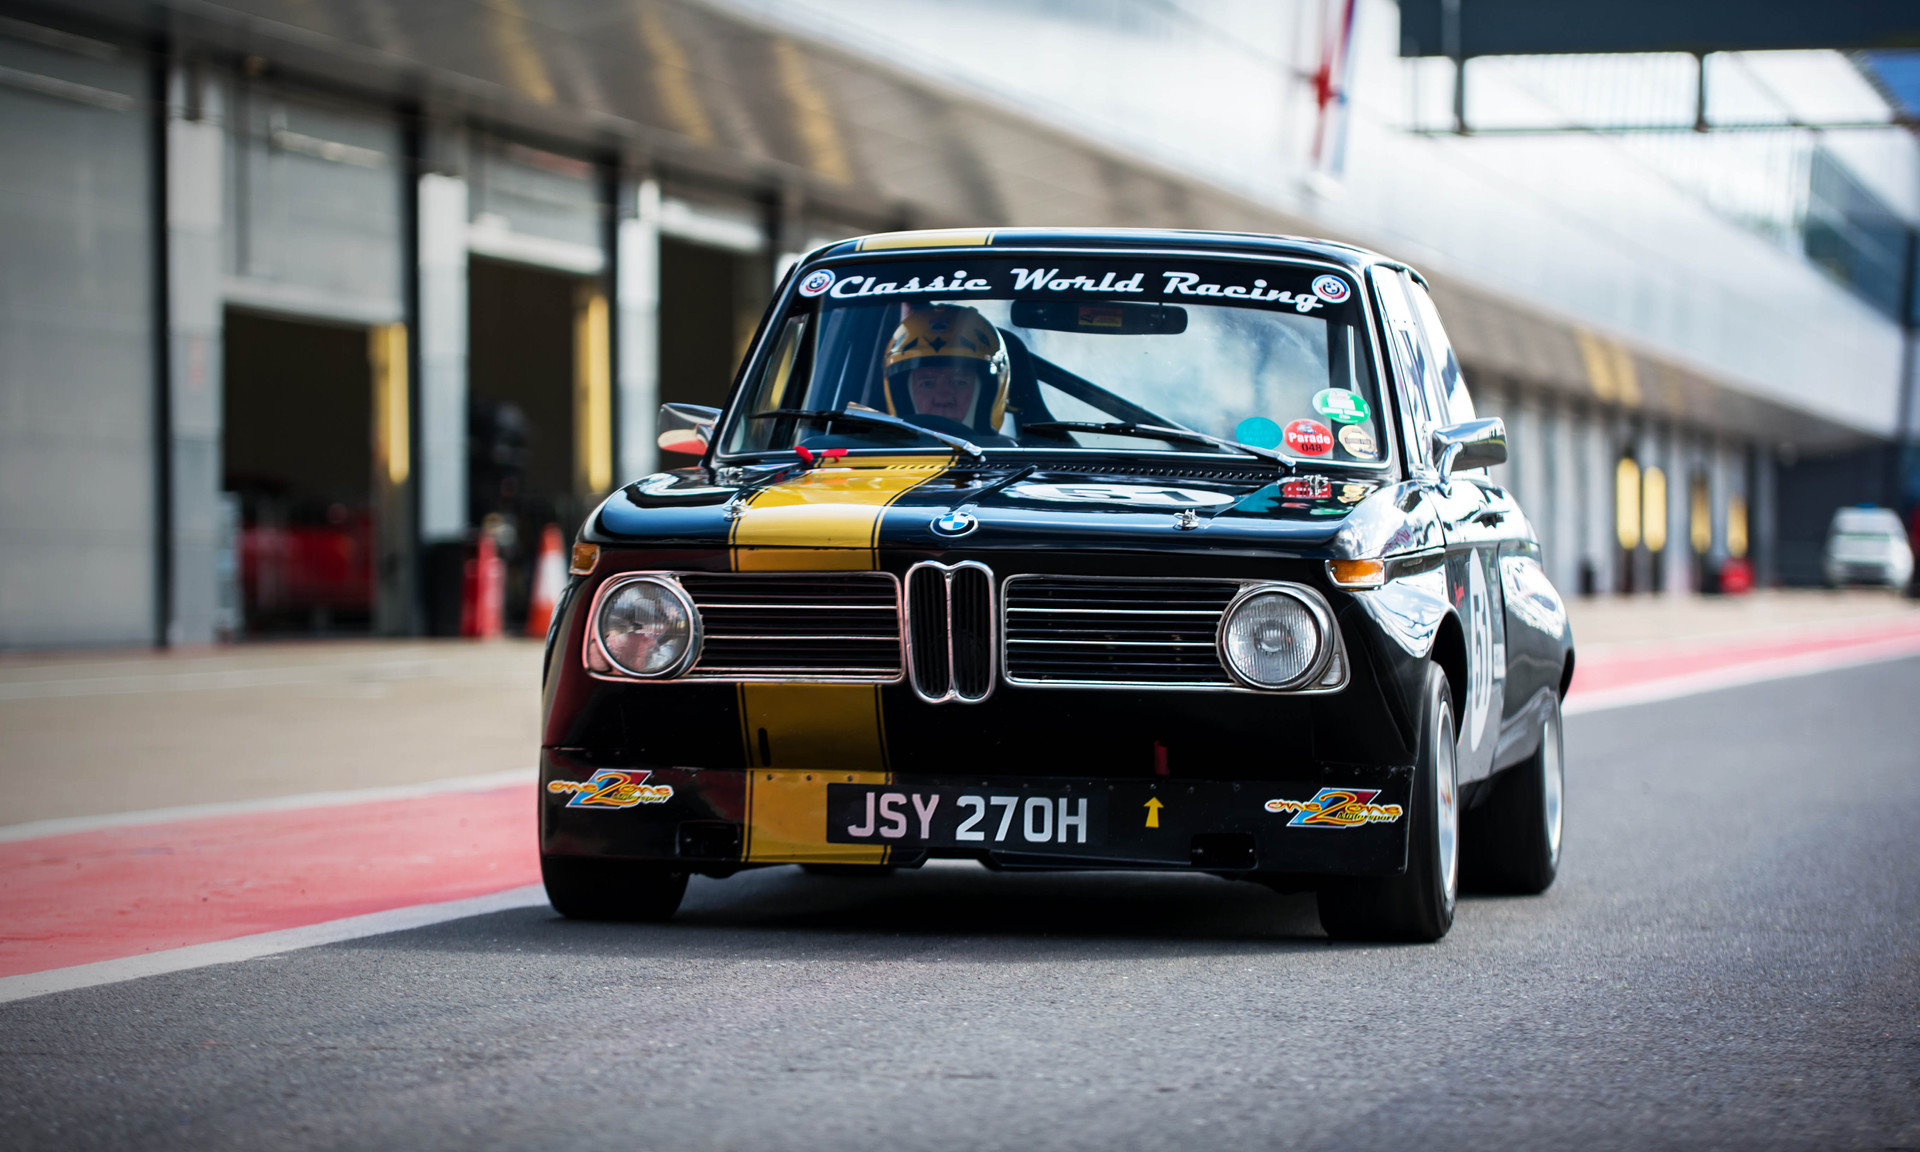 Mike Wilds' 1972 BMW 2002ti at the 2018 Silverstone Classic Preview Day